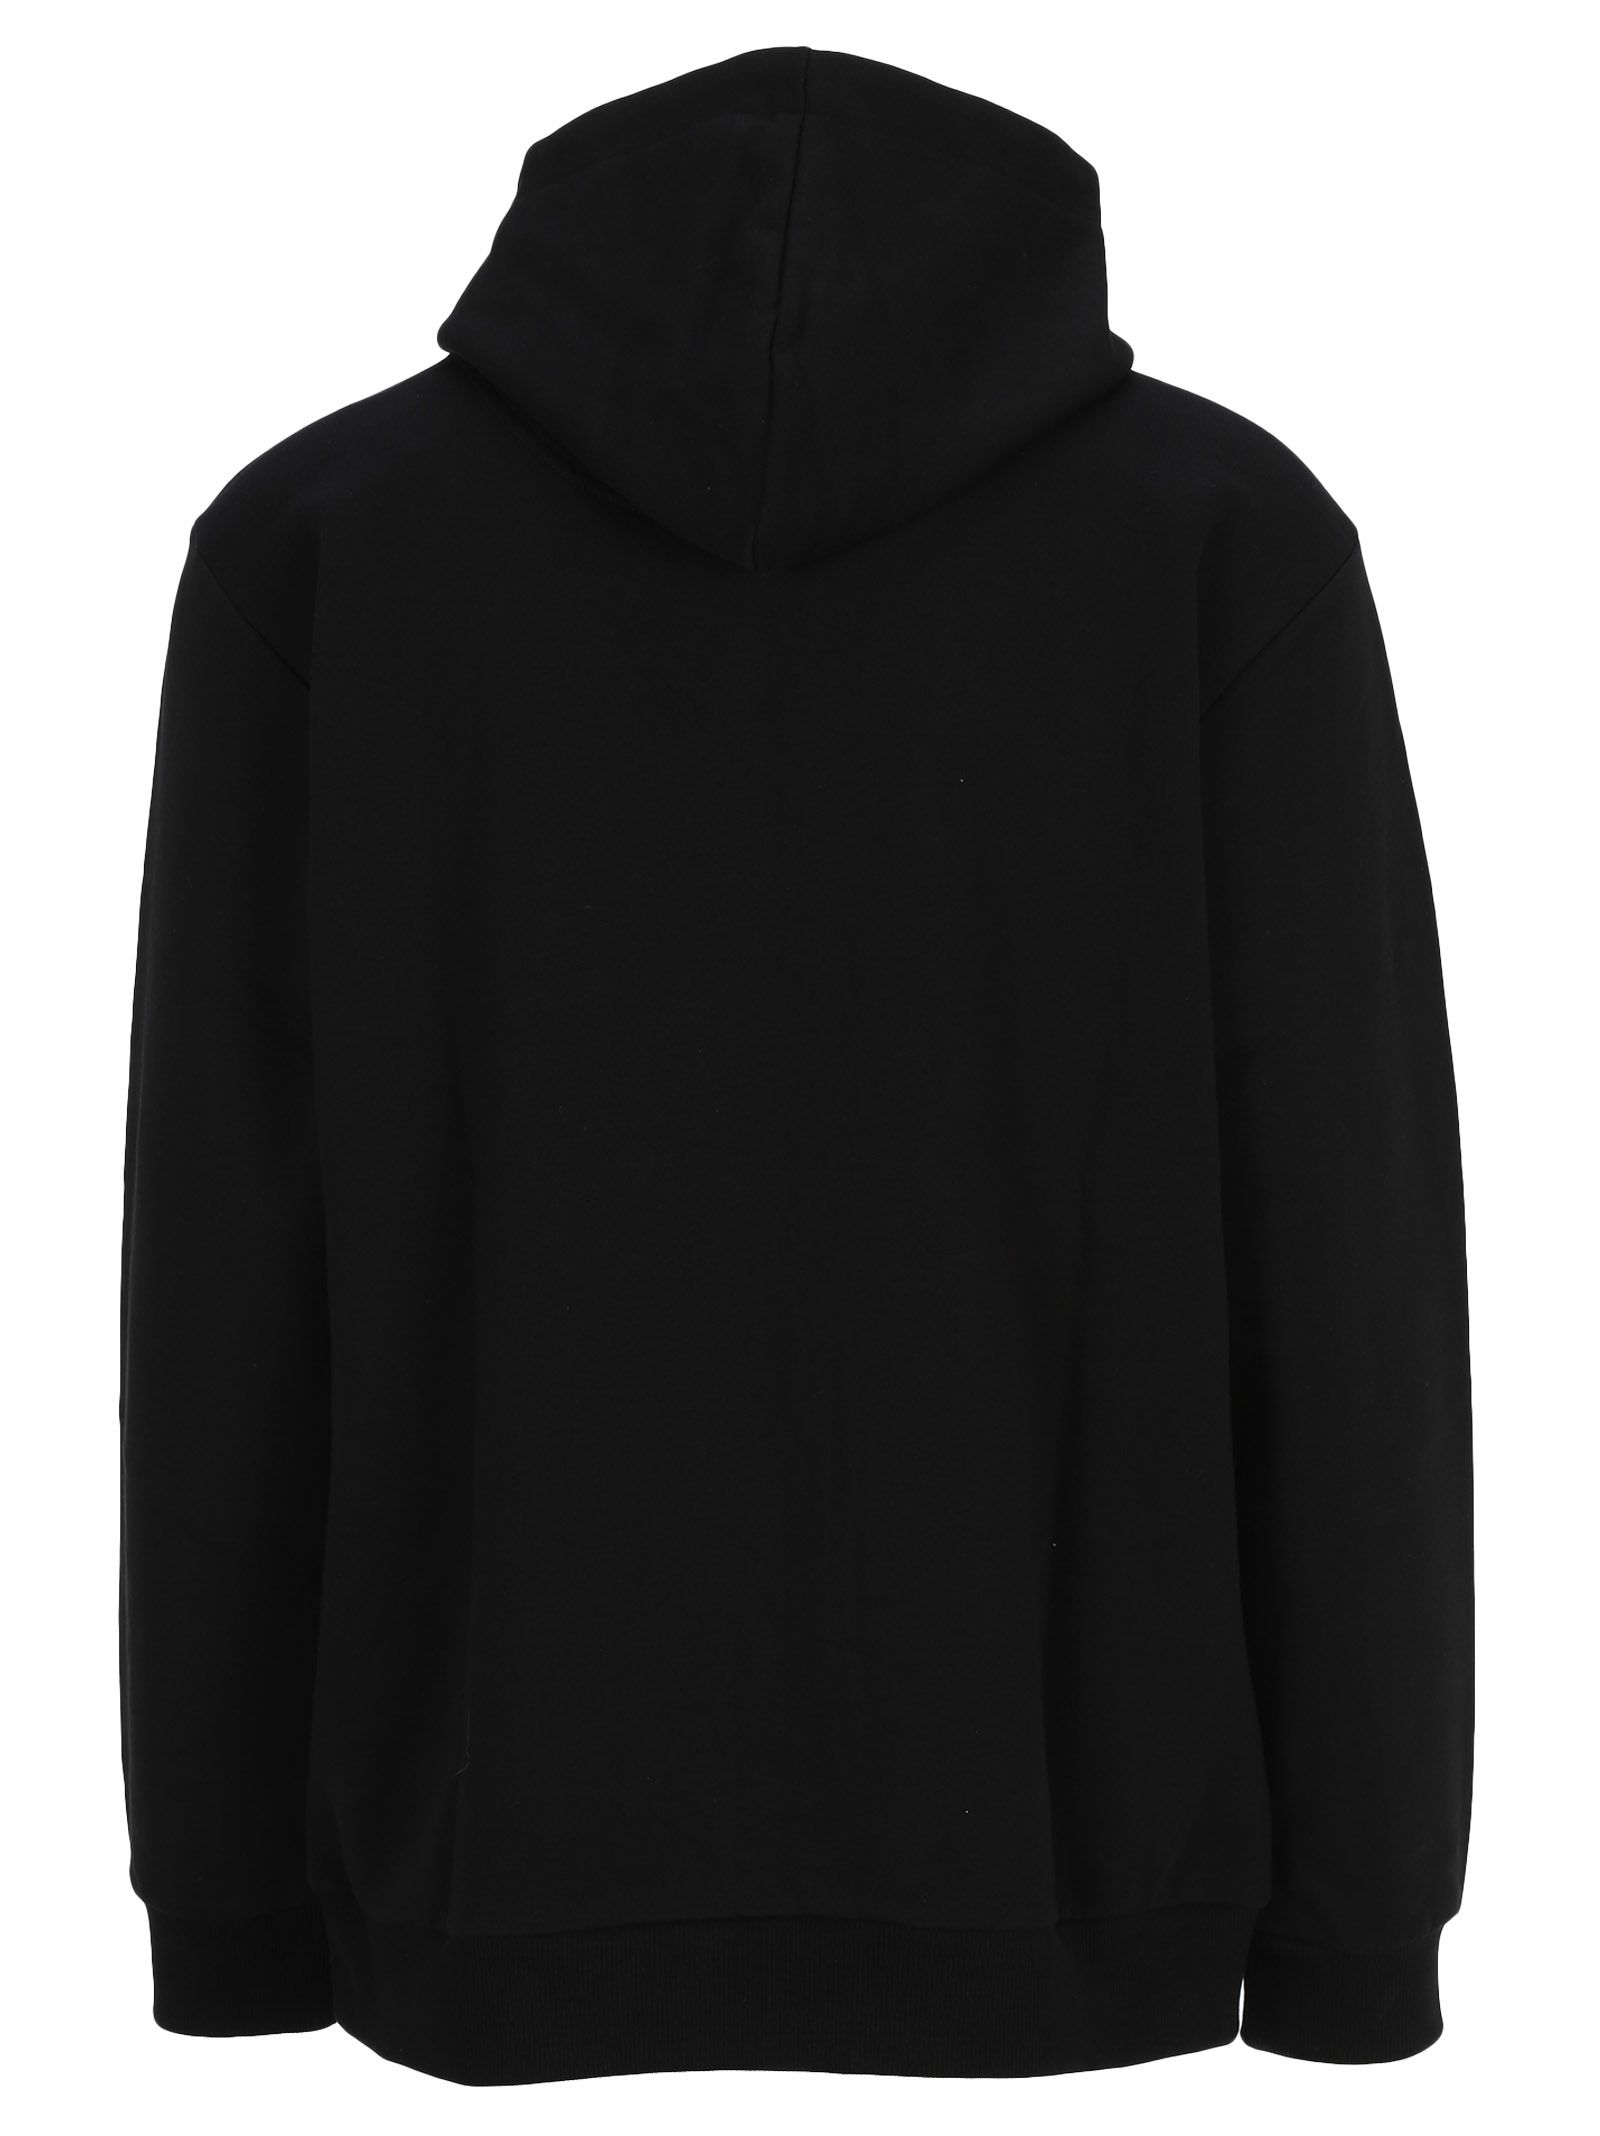 be097f821 Kenzo Kenzo Kenzo Neon Tiger Embroidered Hoodie - BLACK - 10857458 ...